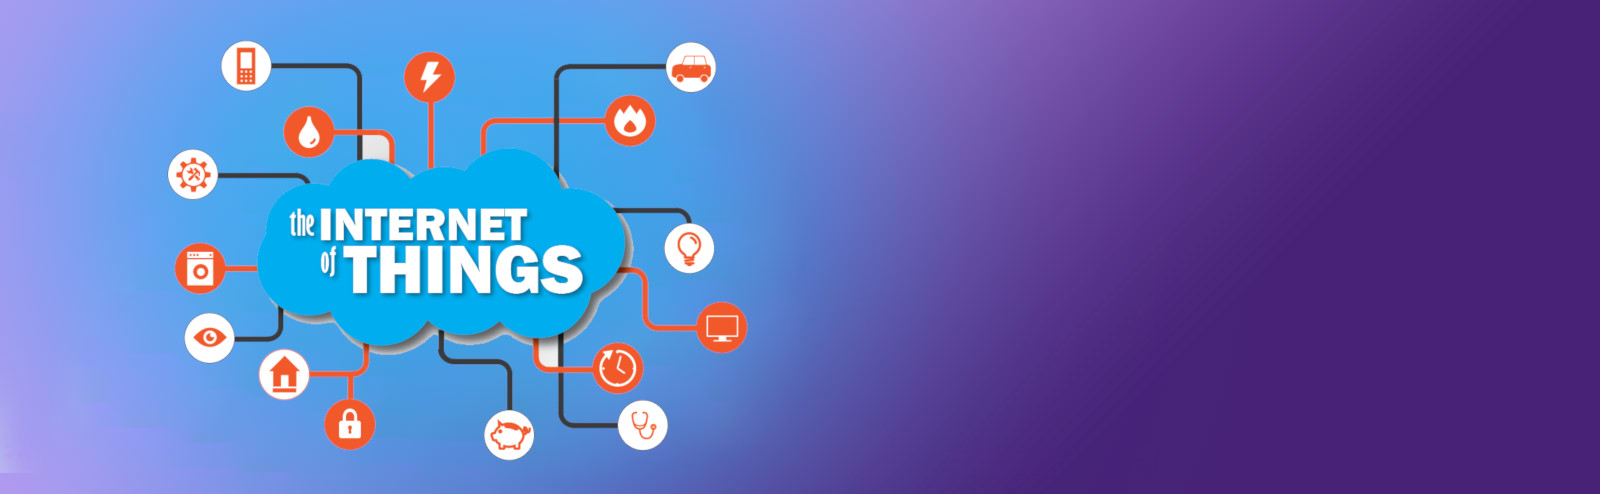 iot-solutions-internet-of-things